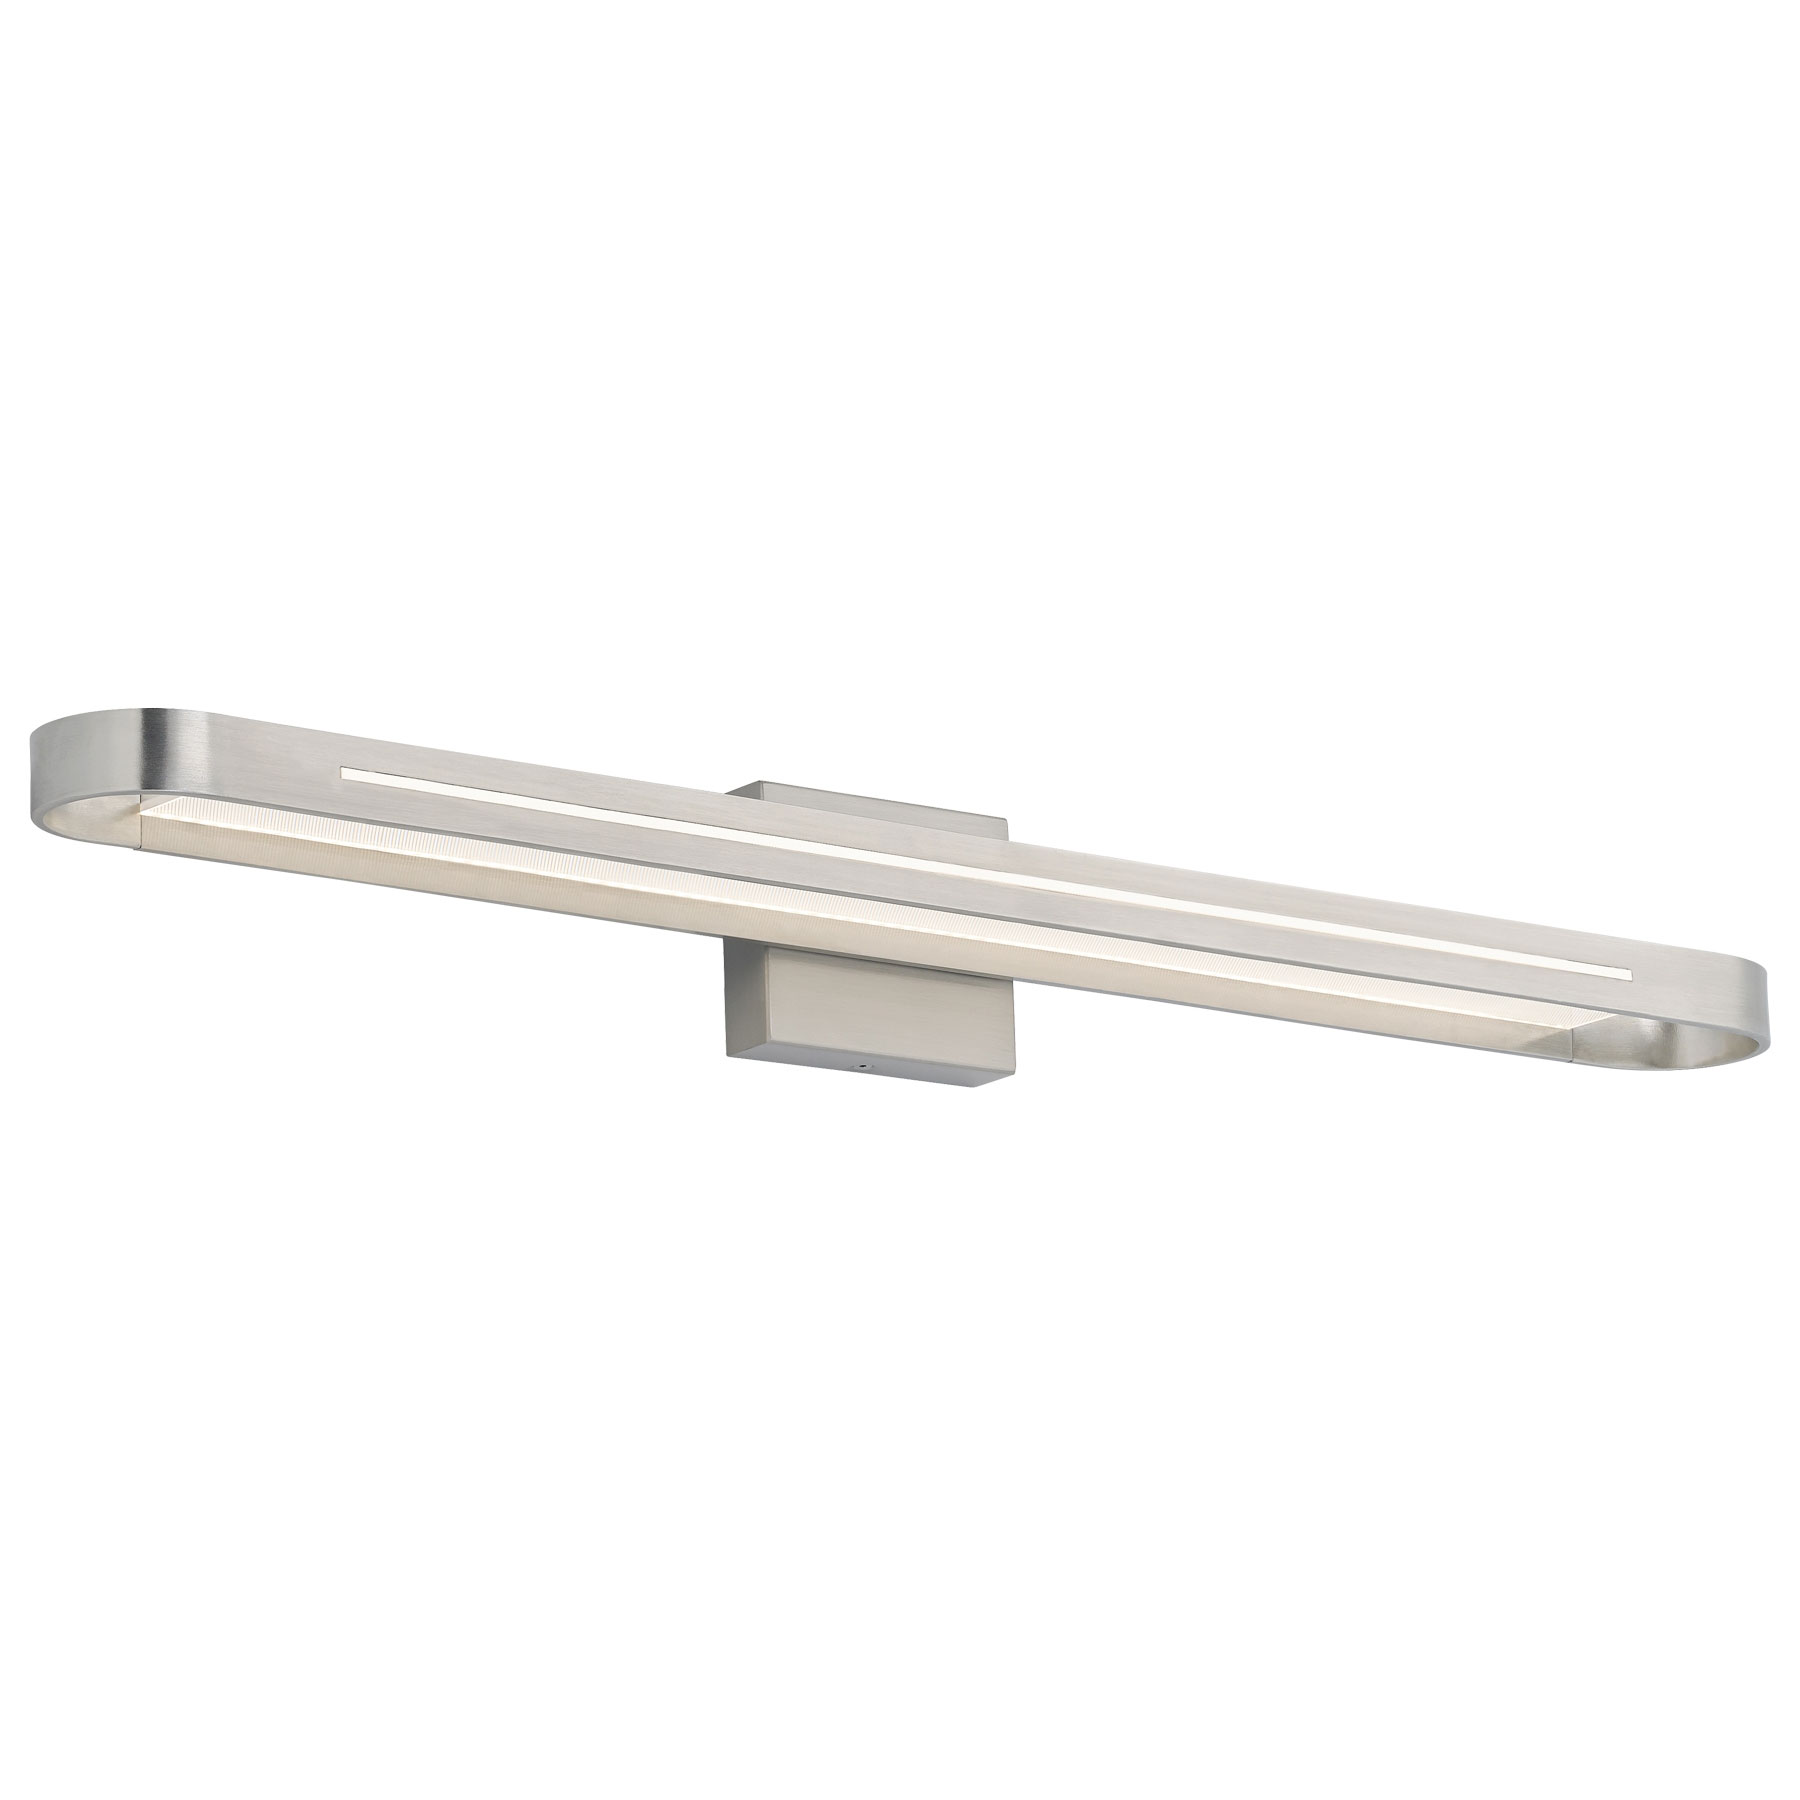 Charmant Vertura Bath Bar By LBL Lighting